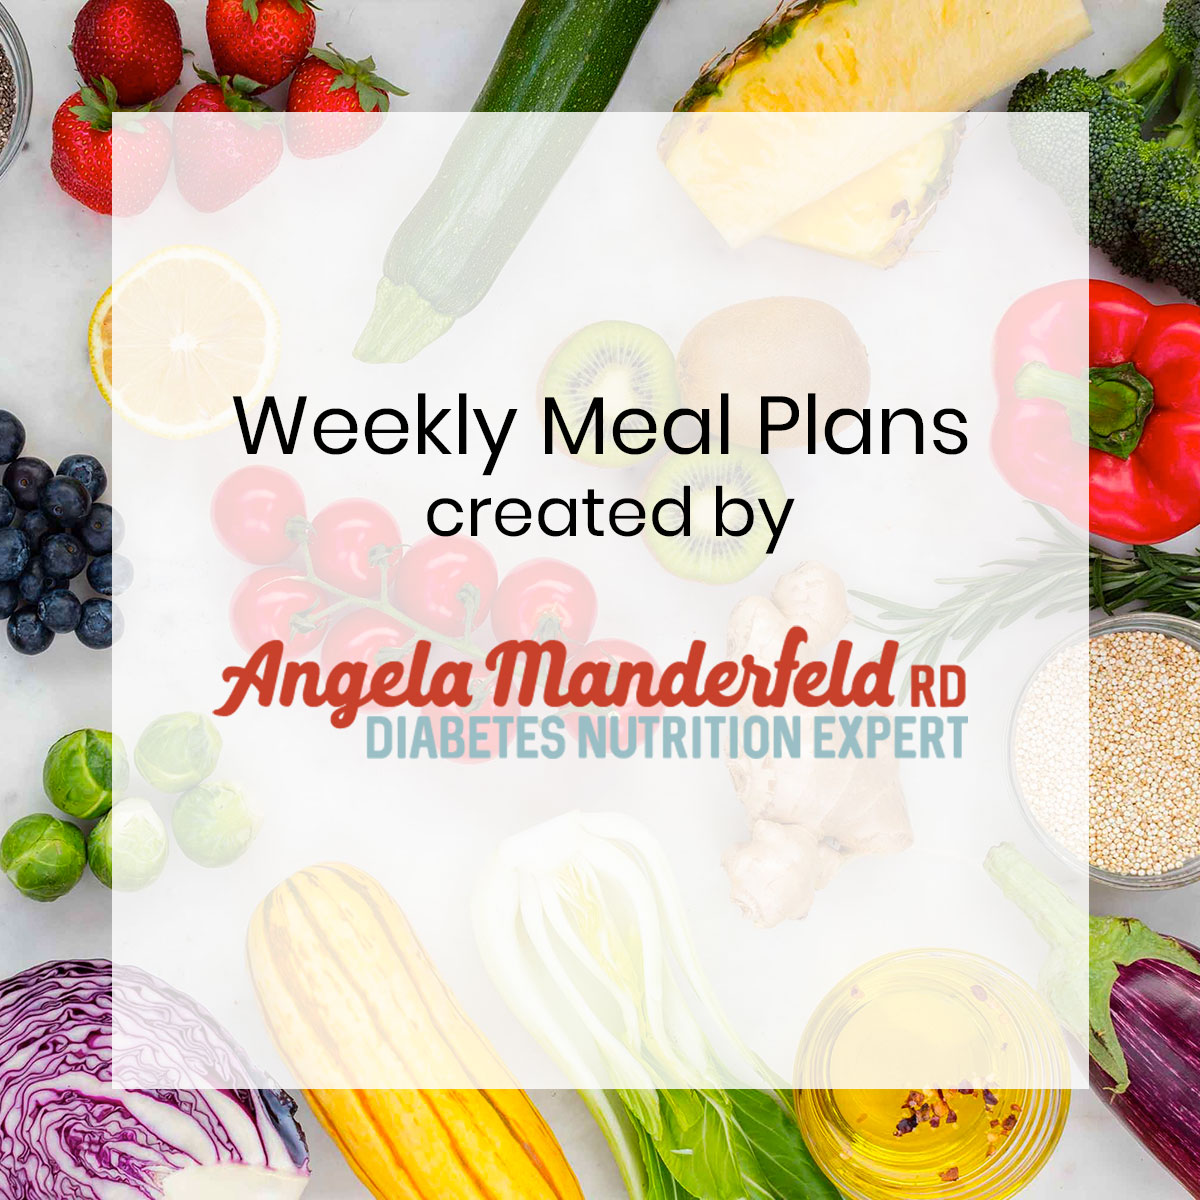 Meal Plans from Diabetes Nutrition Expert Angela Manderfeld